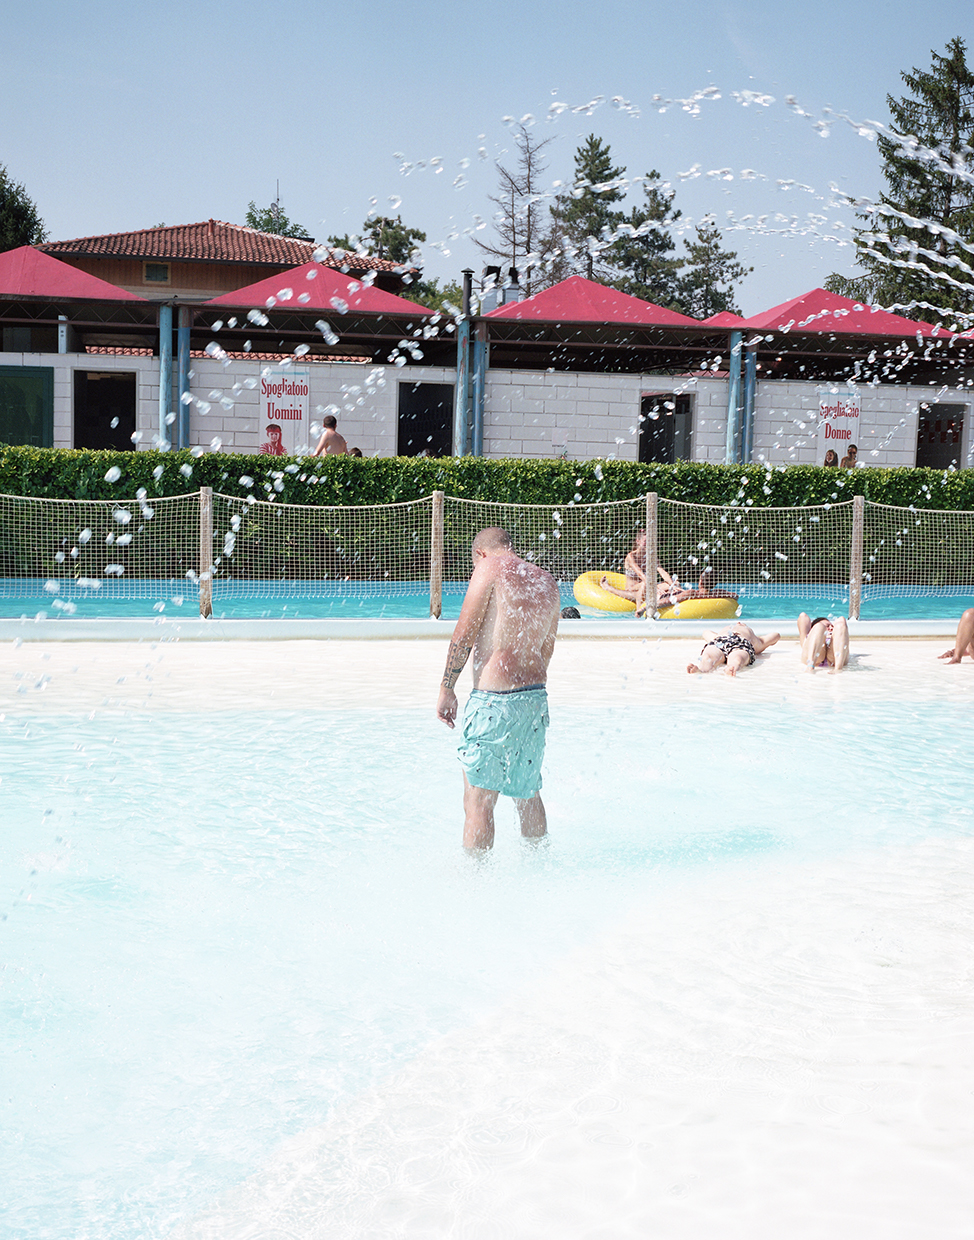 Inzago, Italy, 2017A man in a water fun park in Inzago, a small village in Lombardia